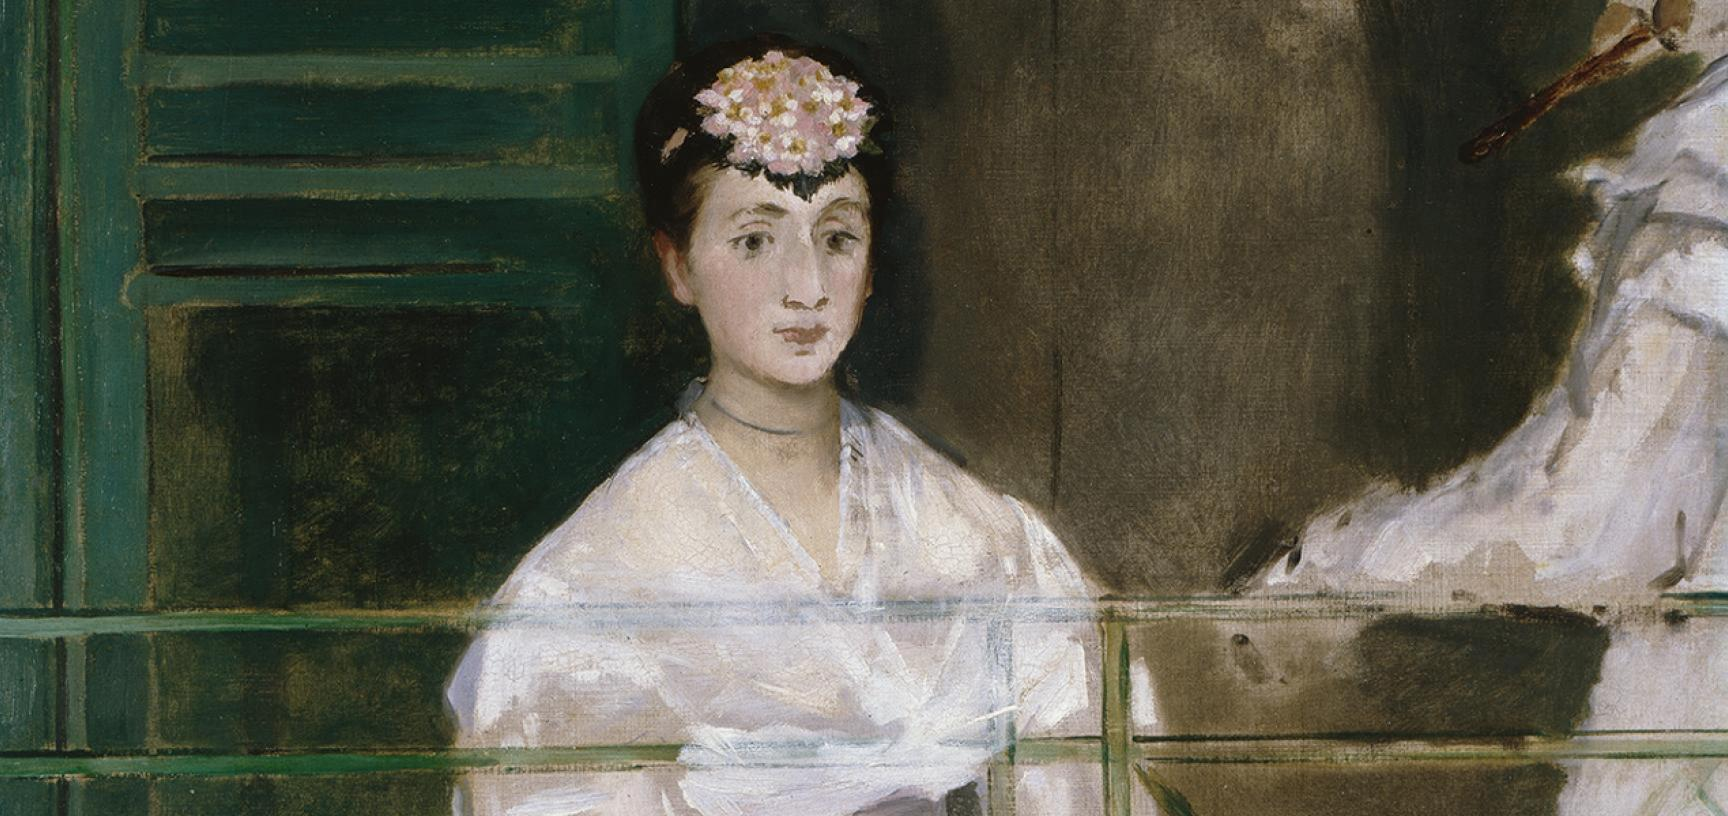 PORTRAIT OF MADEMOISELLE CLAUS by Édouard Manet